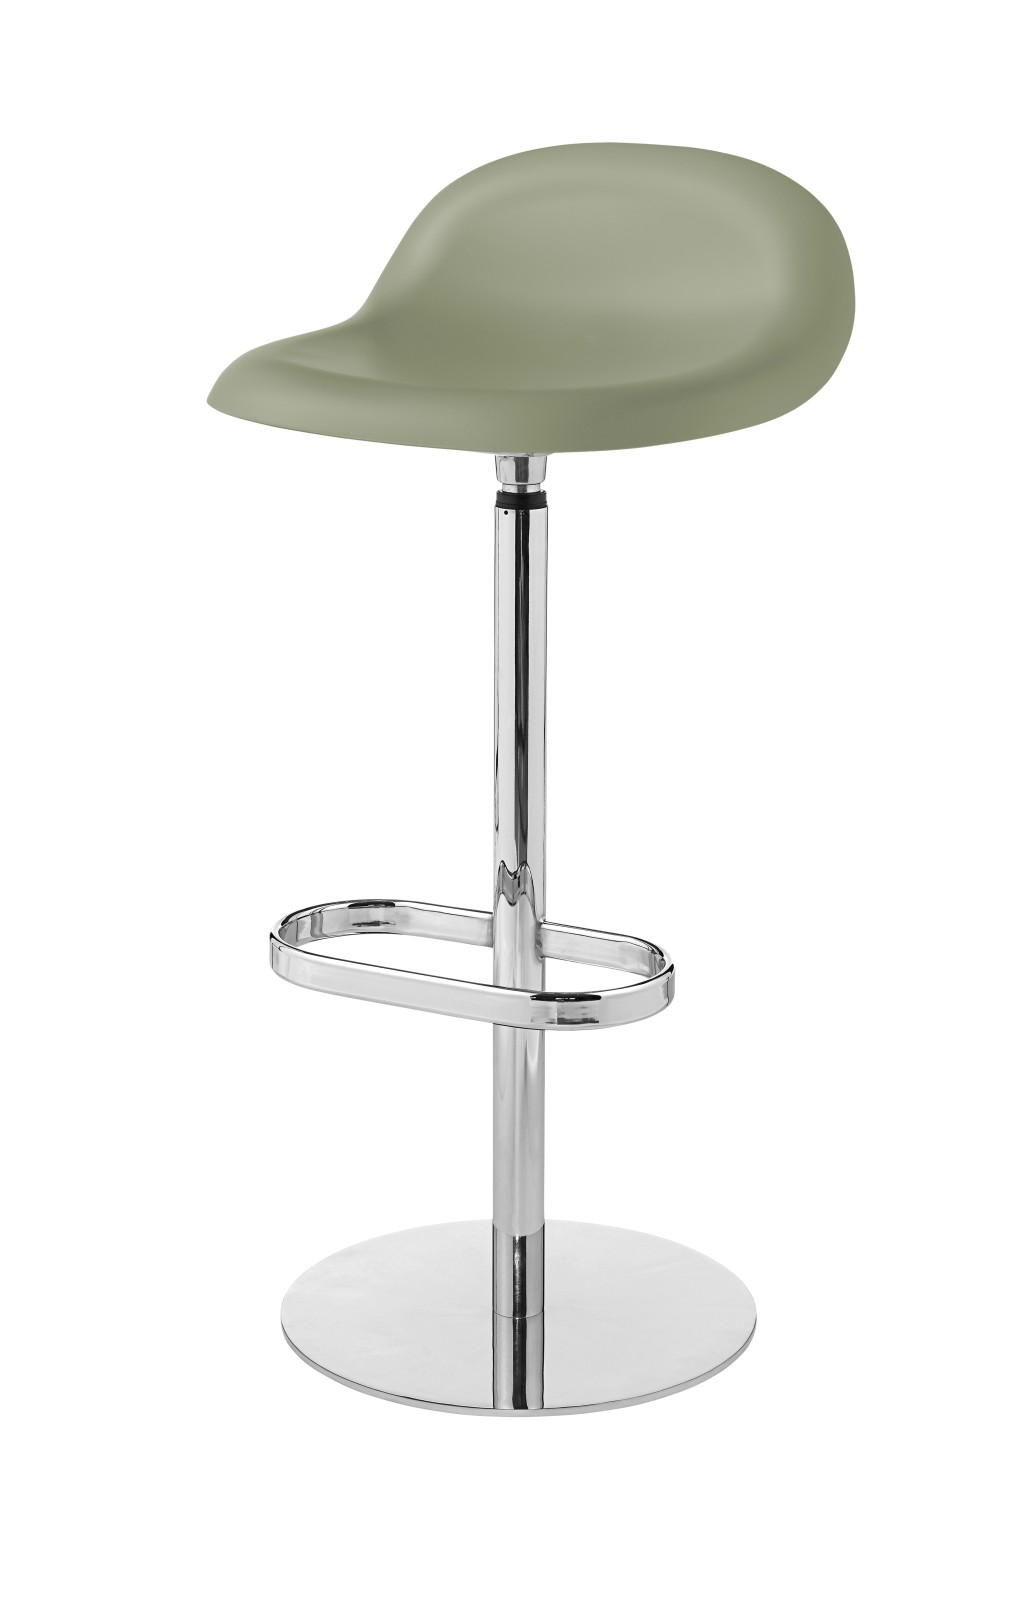 3D Bar Stool - Un-Upholstered, Returning Swivel Base Gubi HiRek Mistletoe Green